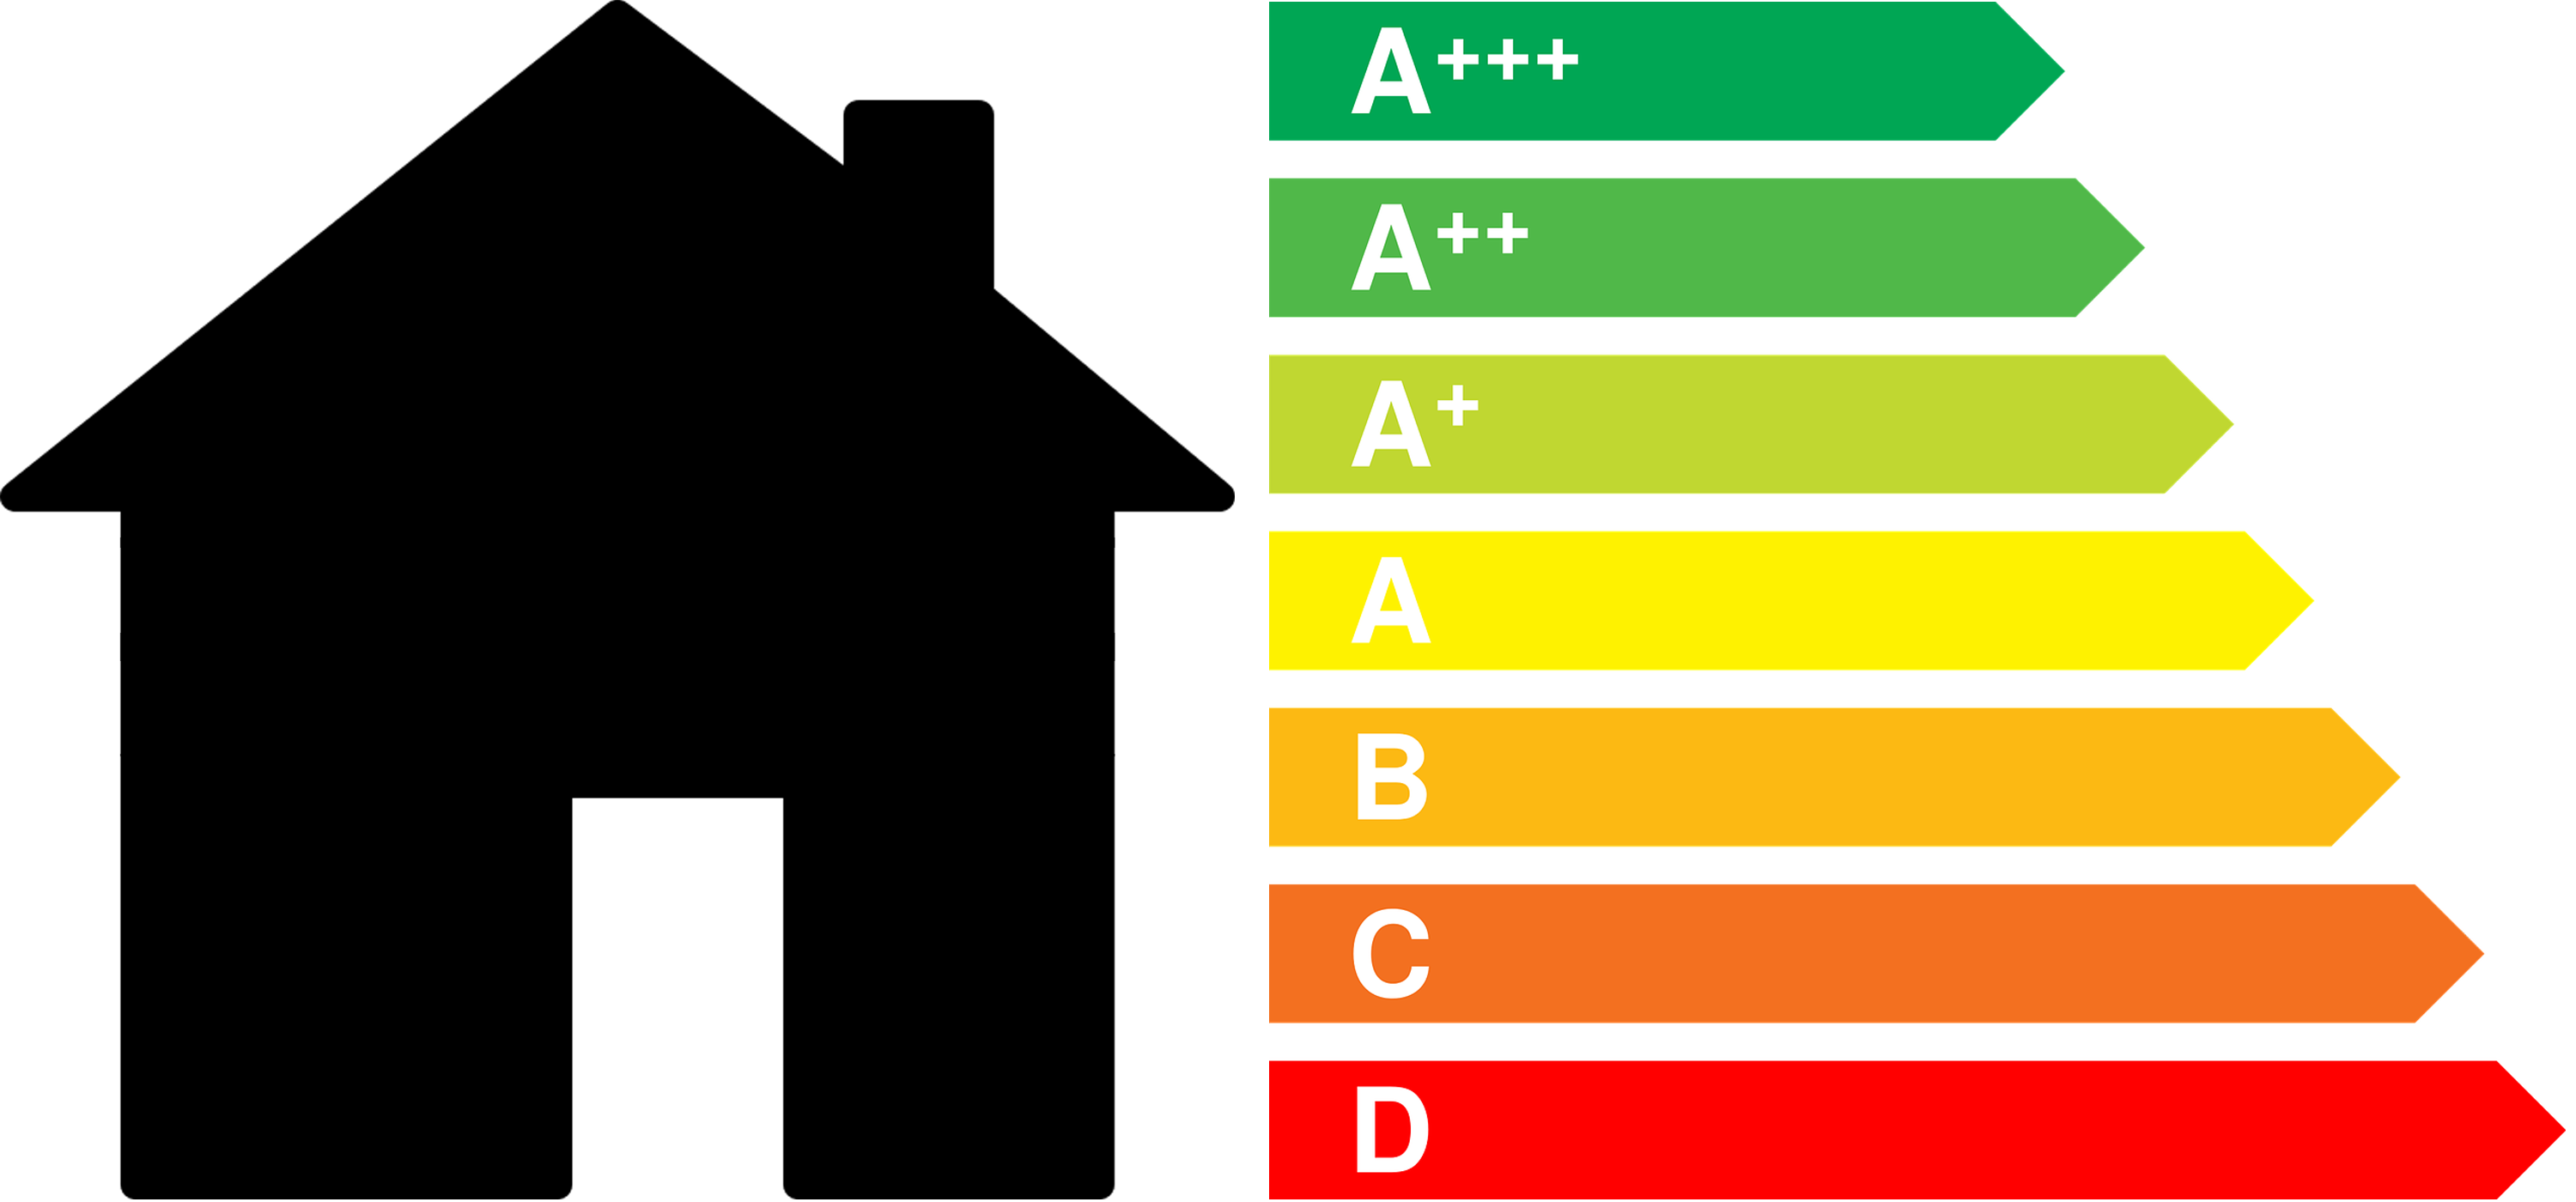 File:Energy-Efficient Home Design - coibentazione - insulation icon.png -  Wikimedia Commons